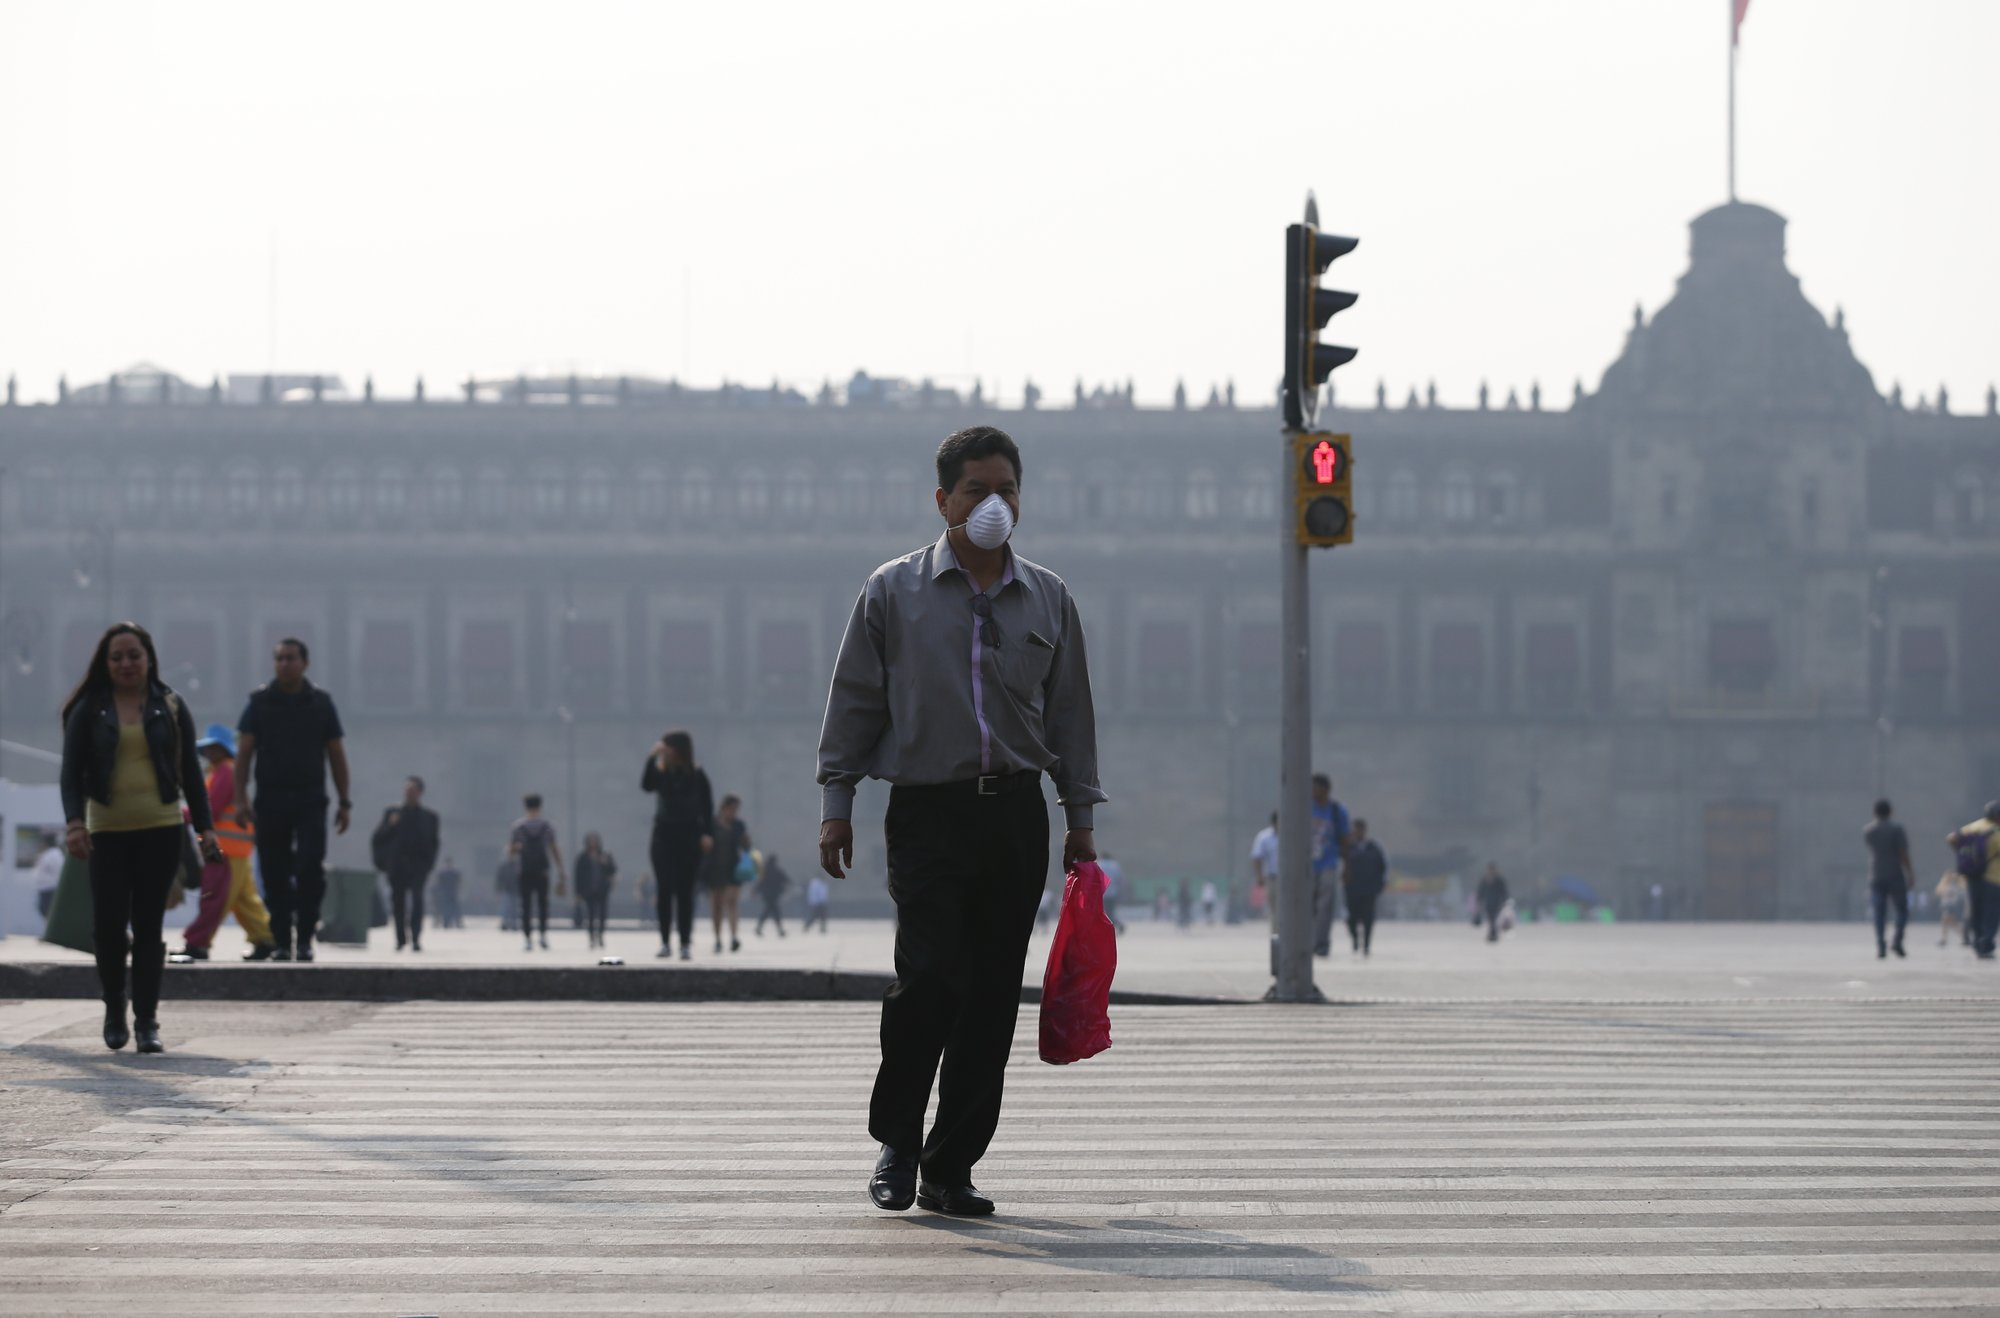 Mexico City closes schools, restricts traffic due to smoke